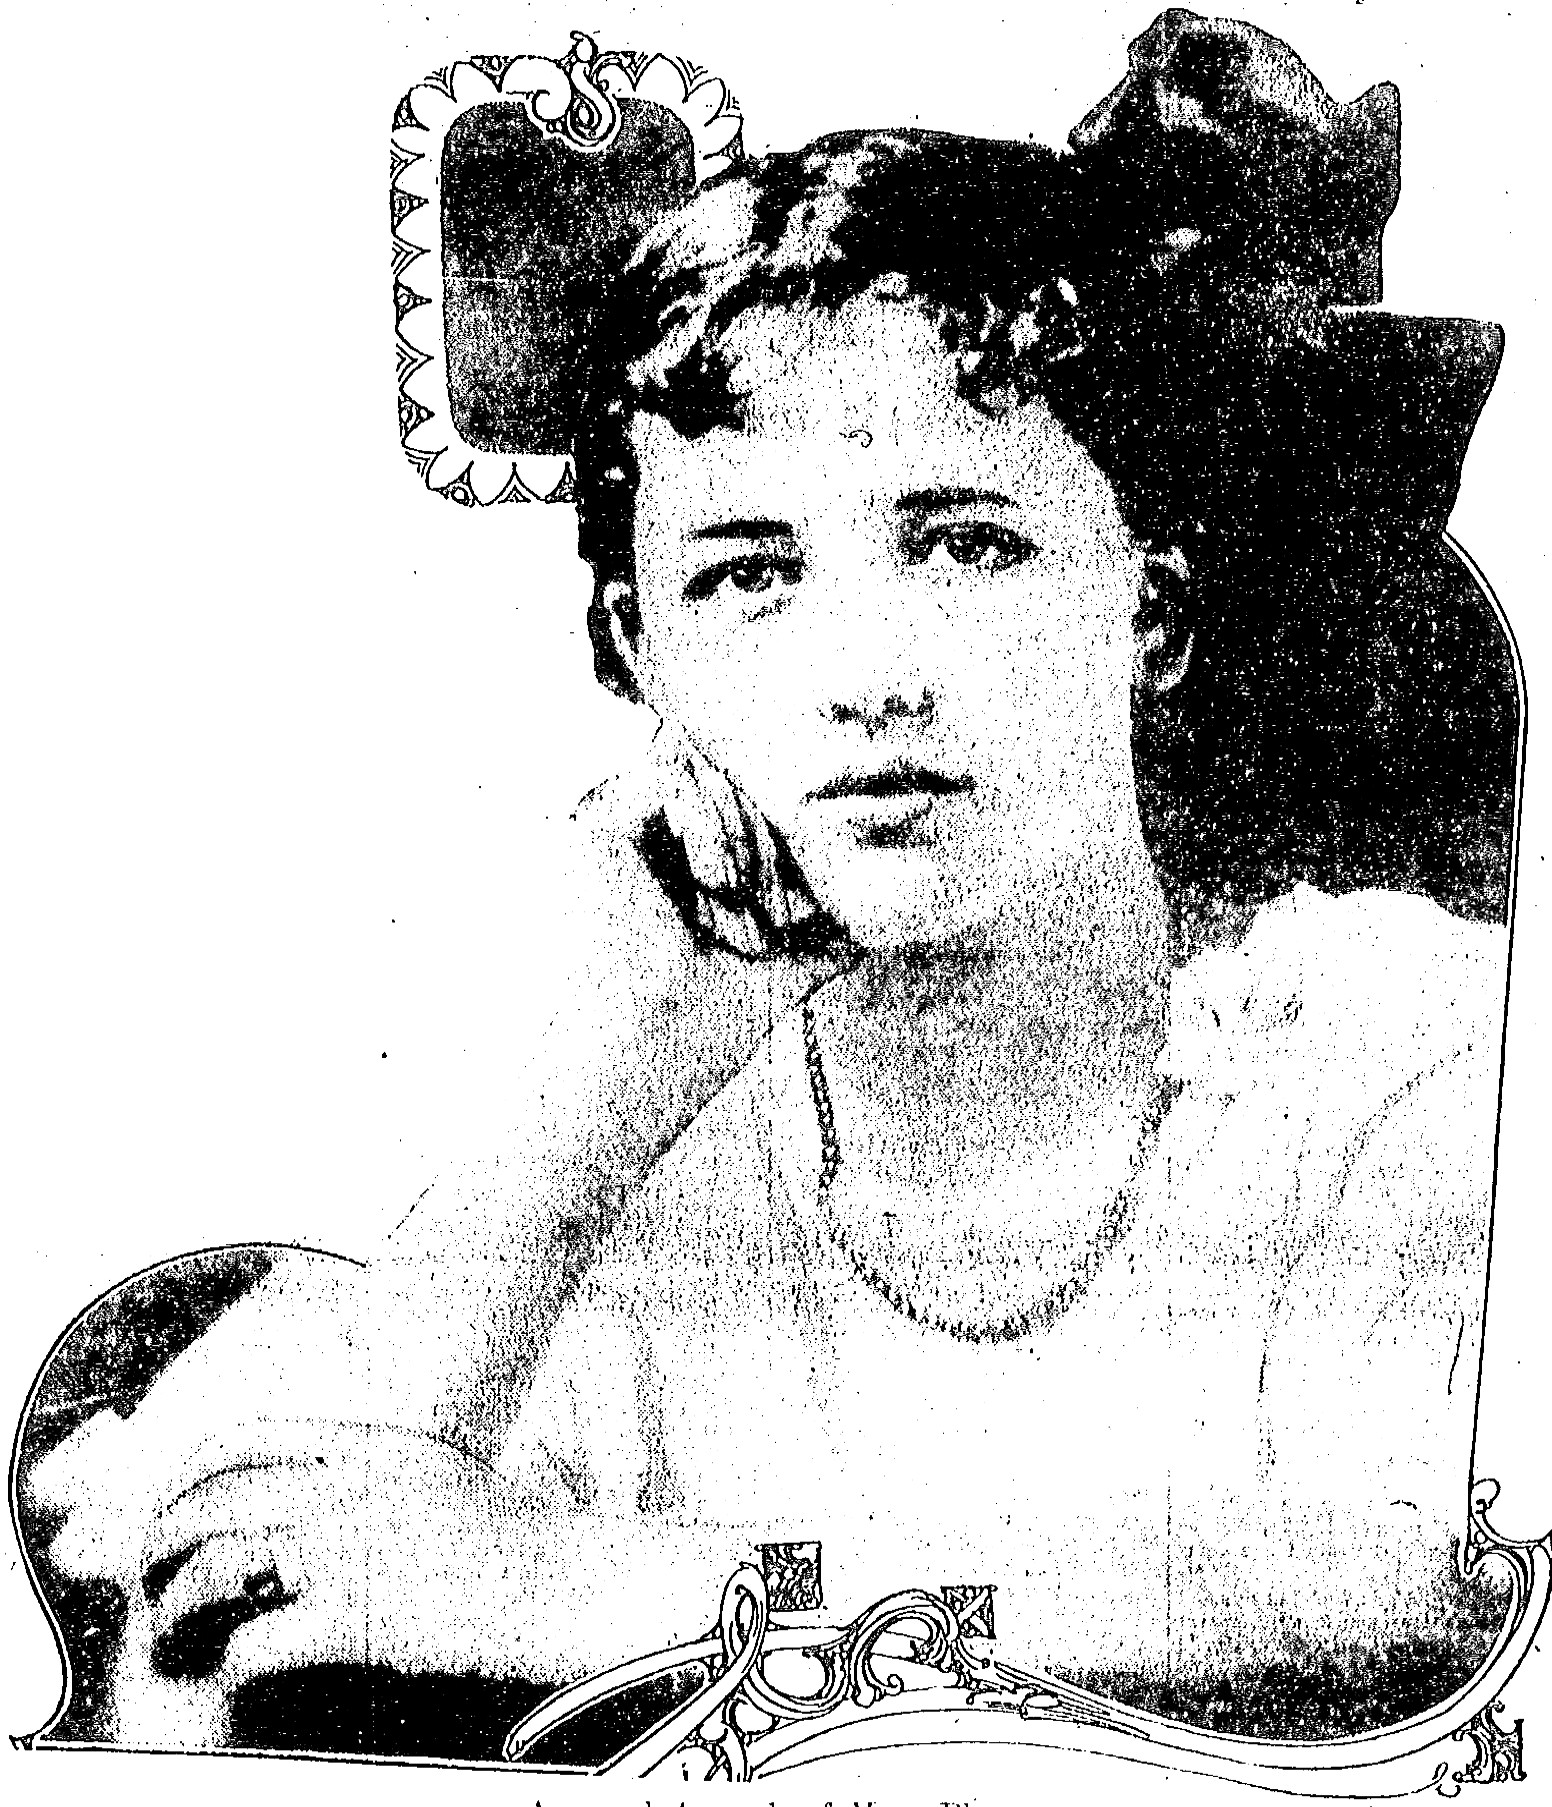 http://www.johndenugent.com/images/mary-phagan-published-april-30-1913.jpg